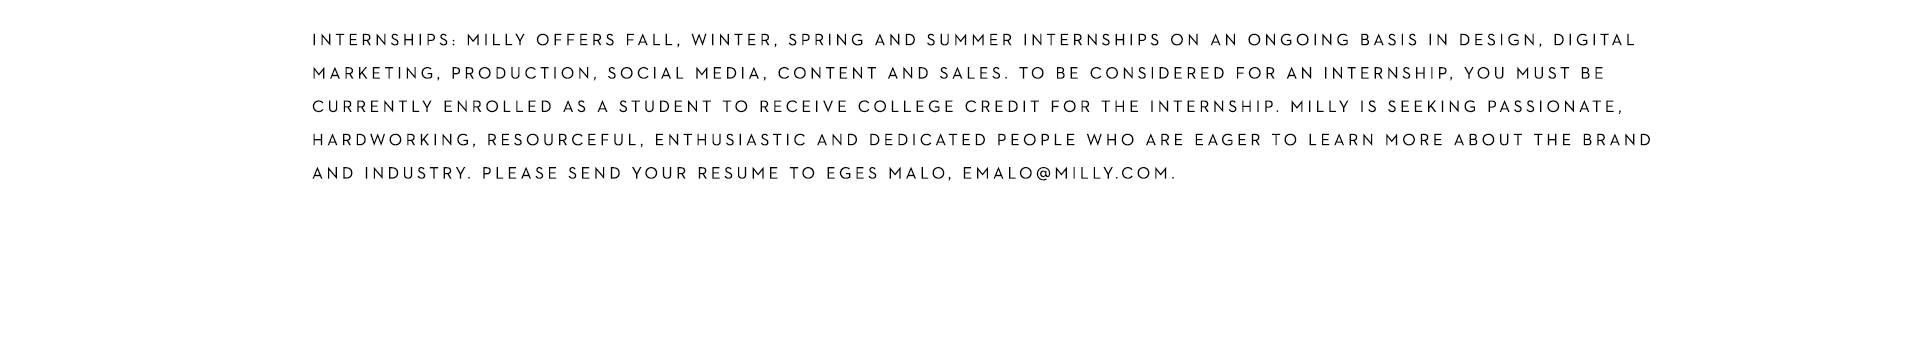 MILLY careers